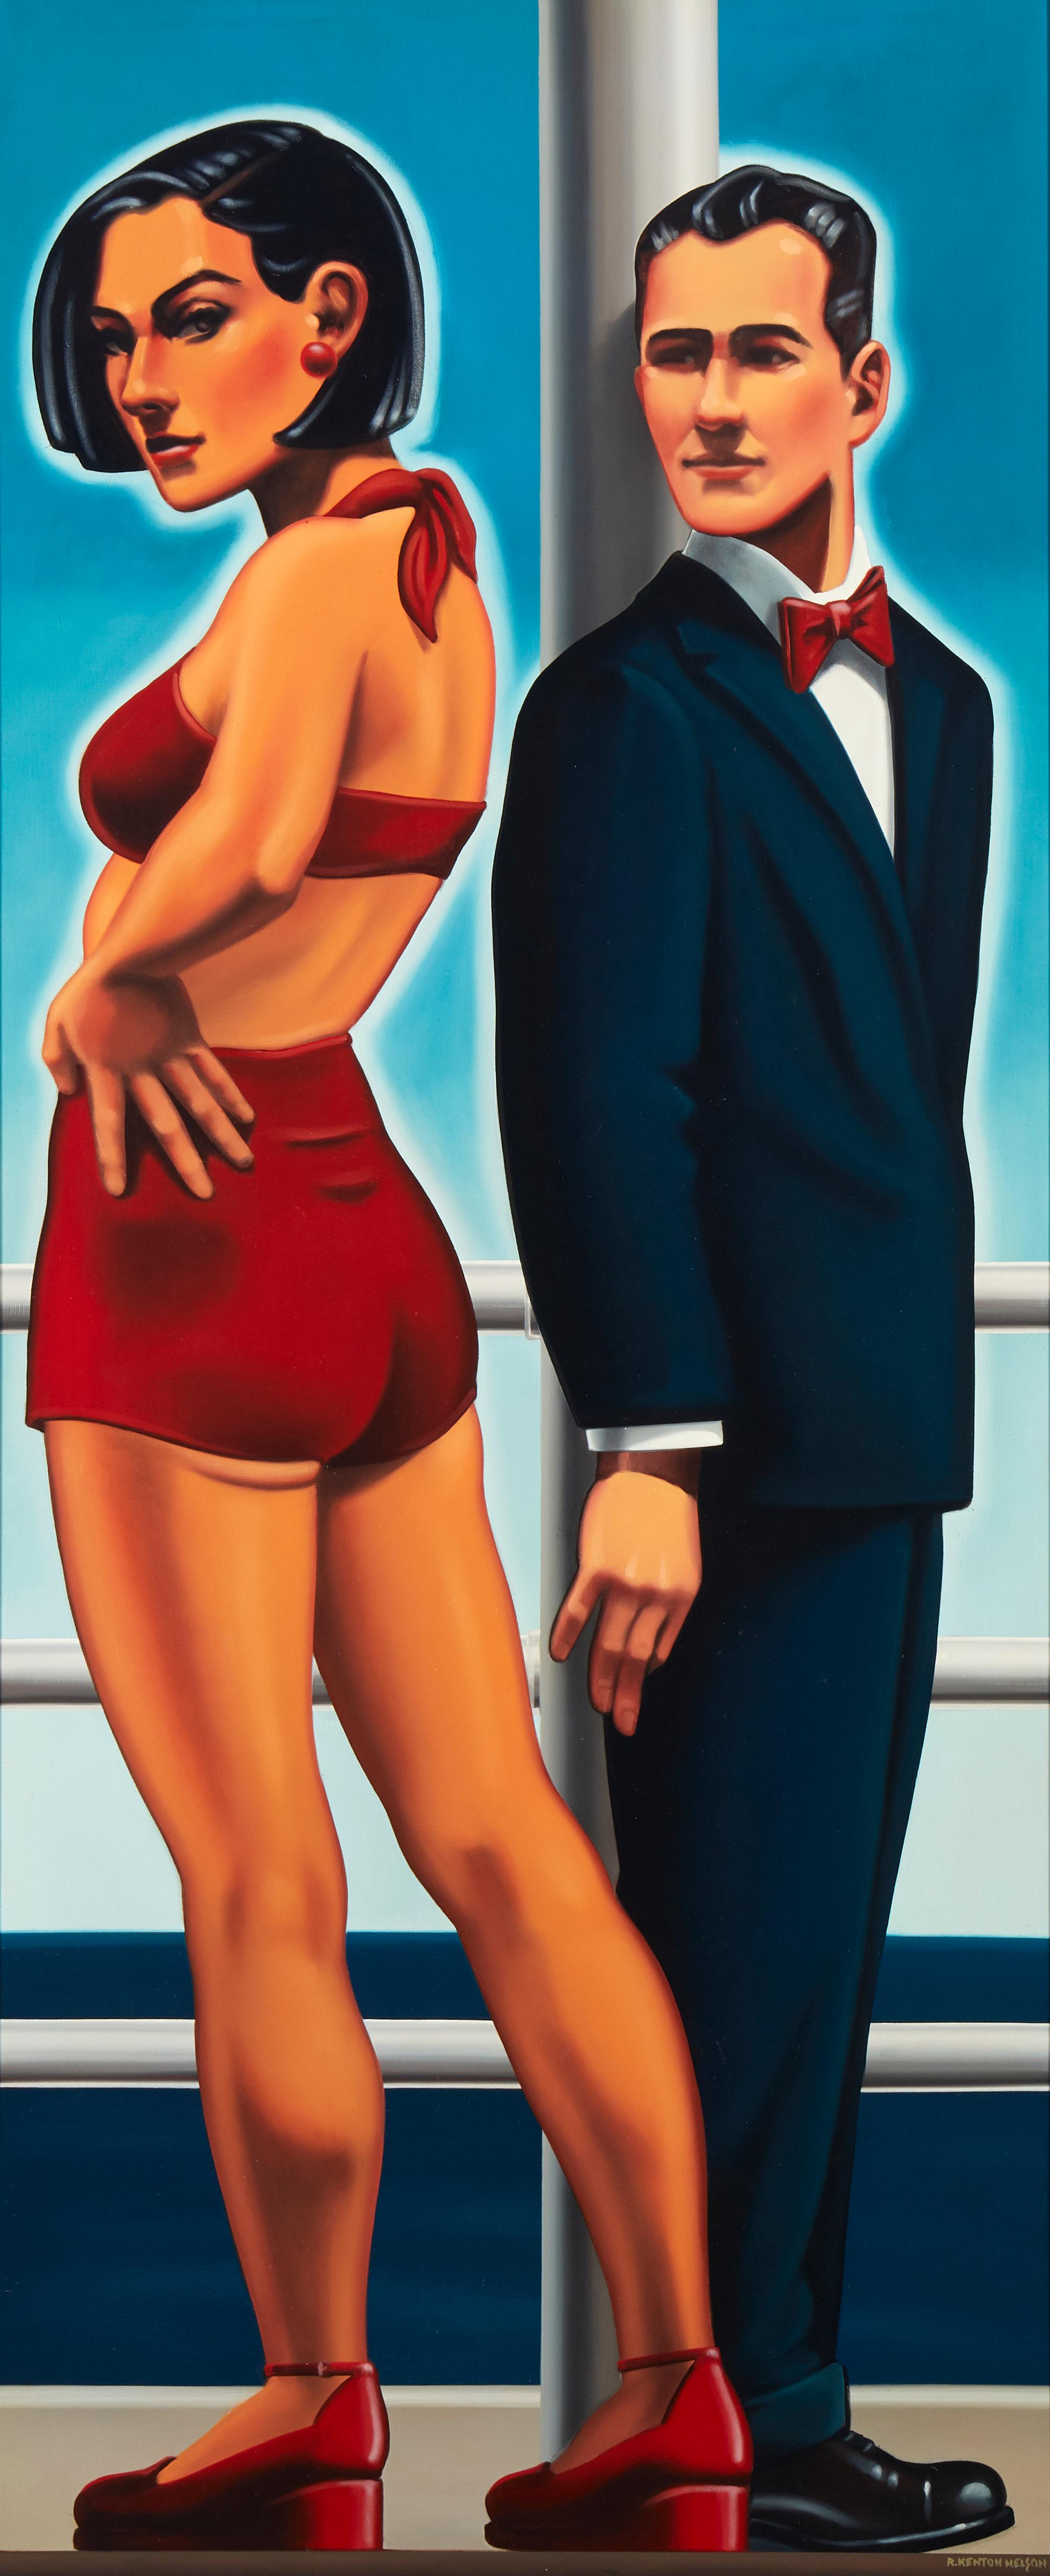 """R. Kenton Nelson, (b. 1954, American), Man in a Blue Suit, Oil on canvas, 49"""" H x 21"""" W"""